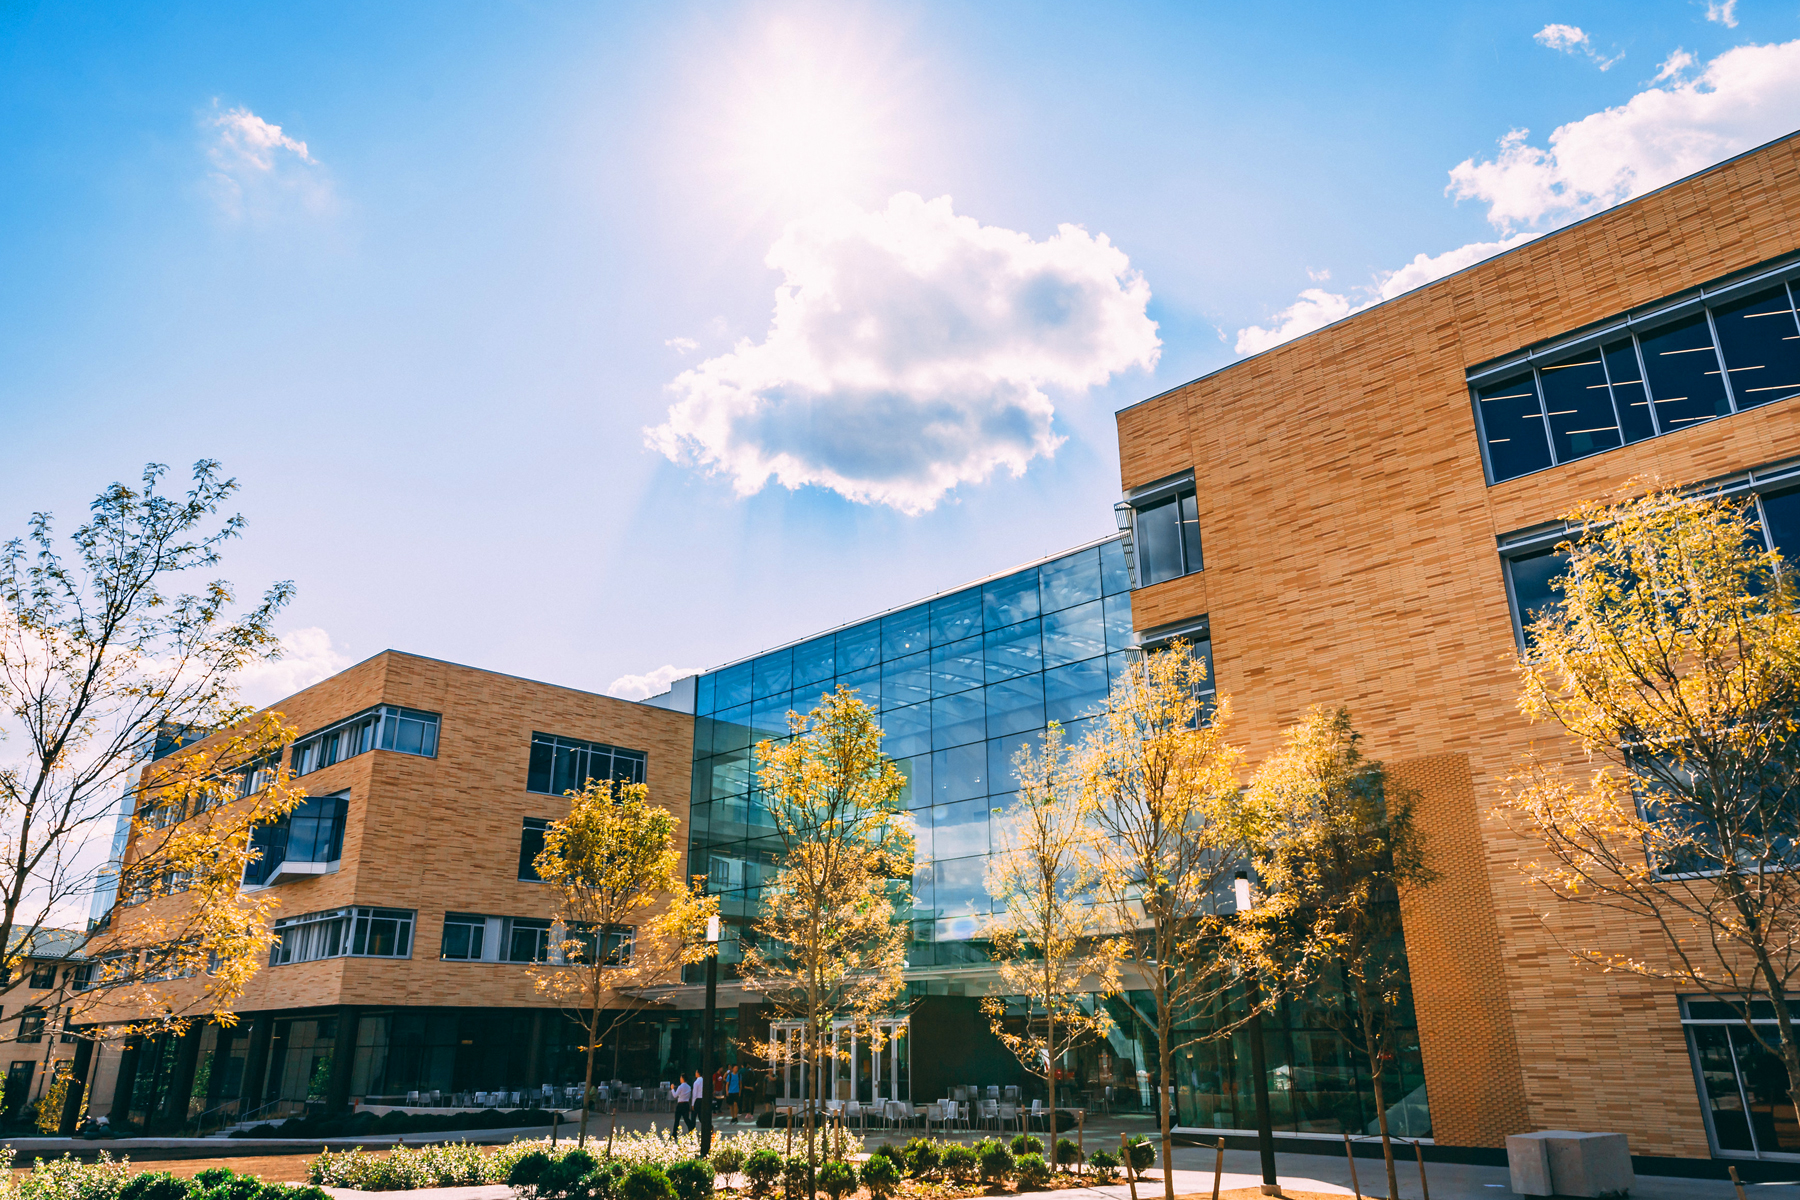 The Tepper Quad is the school's newest building.